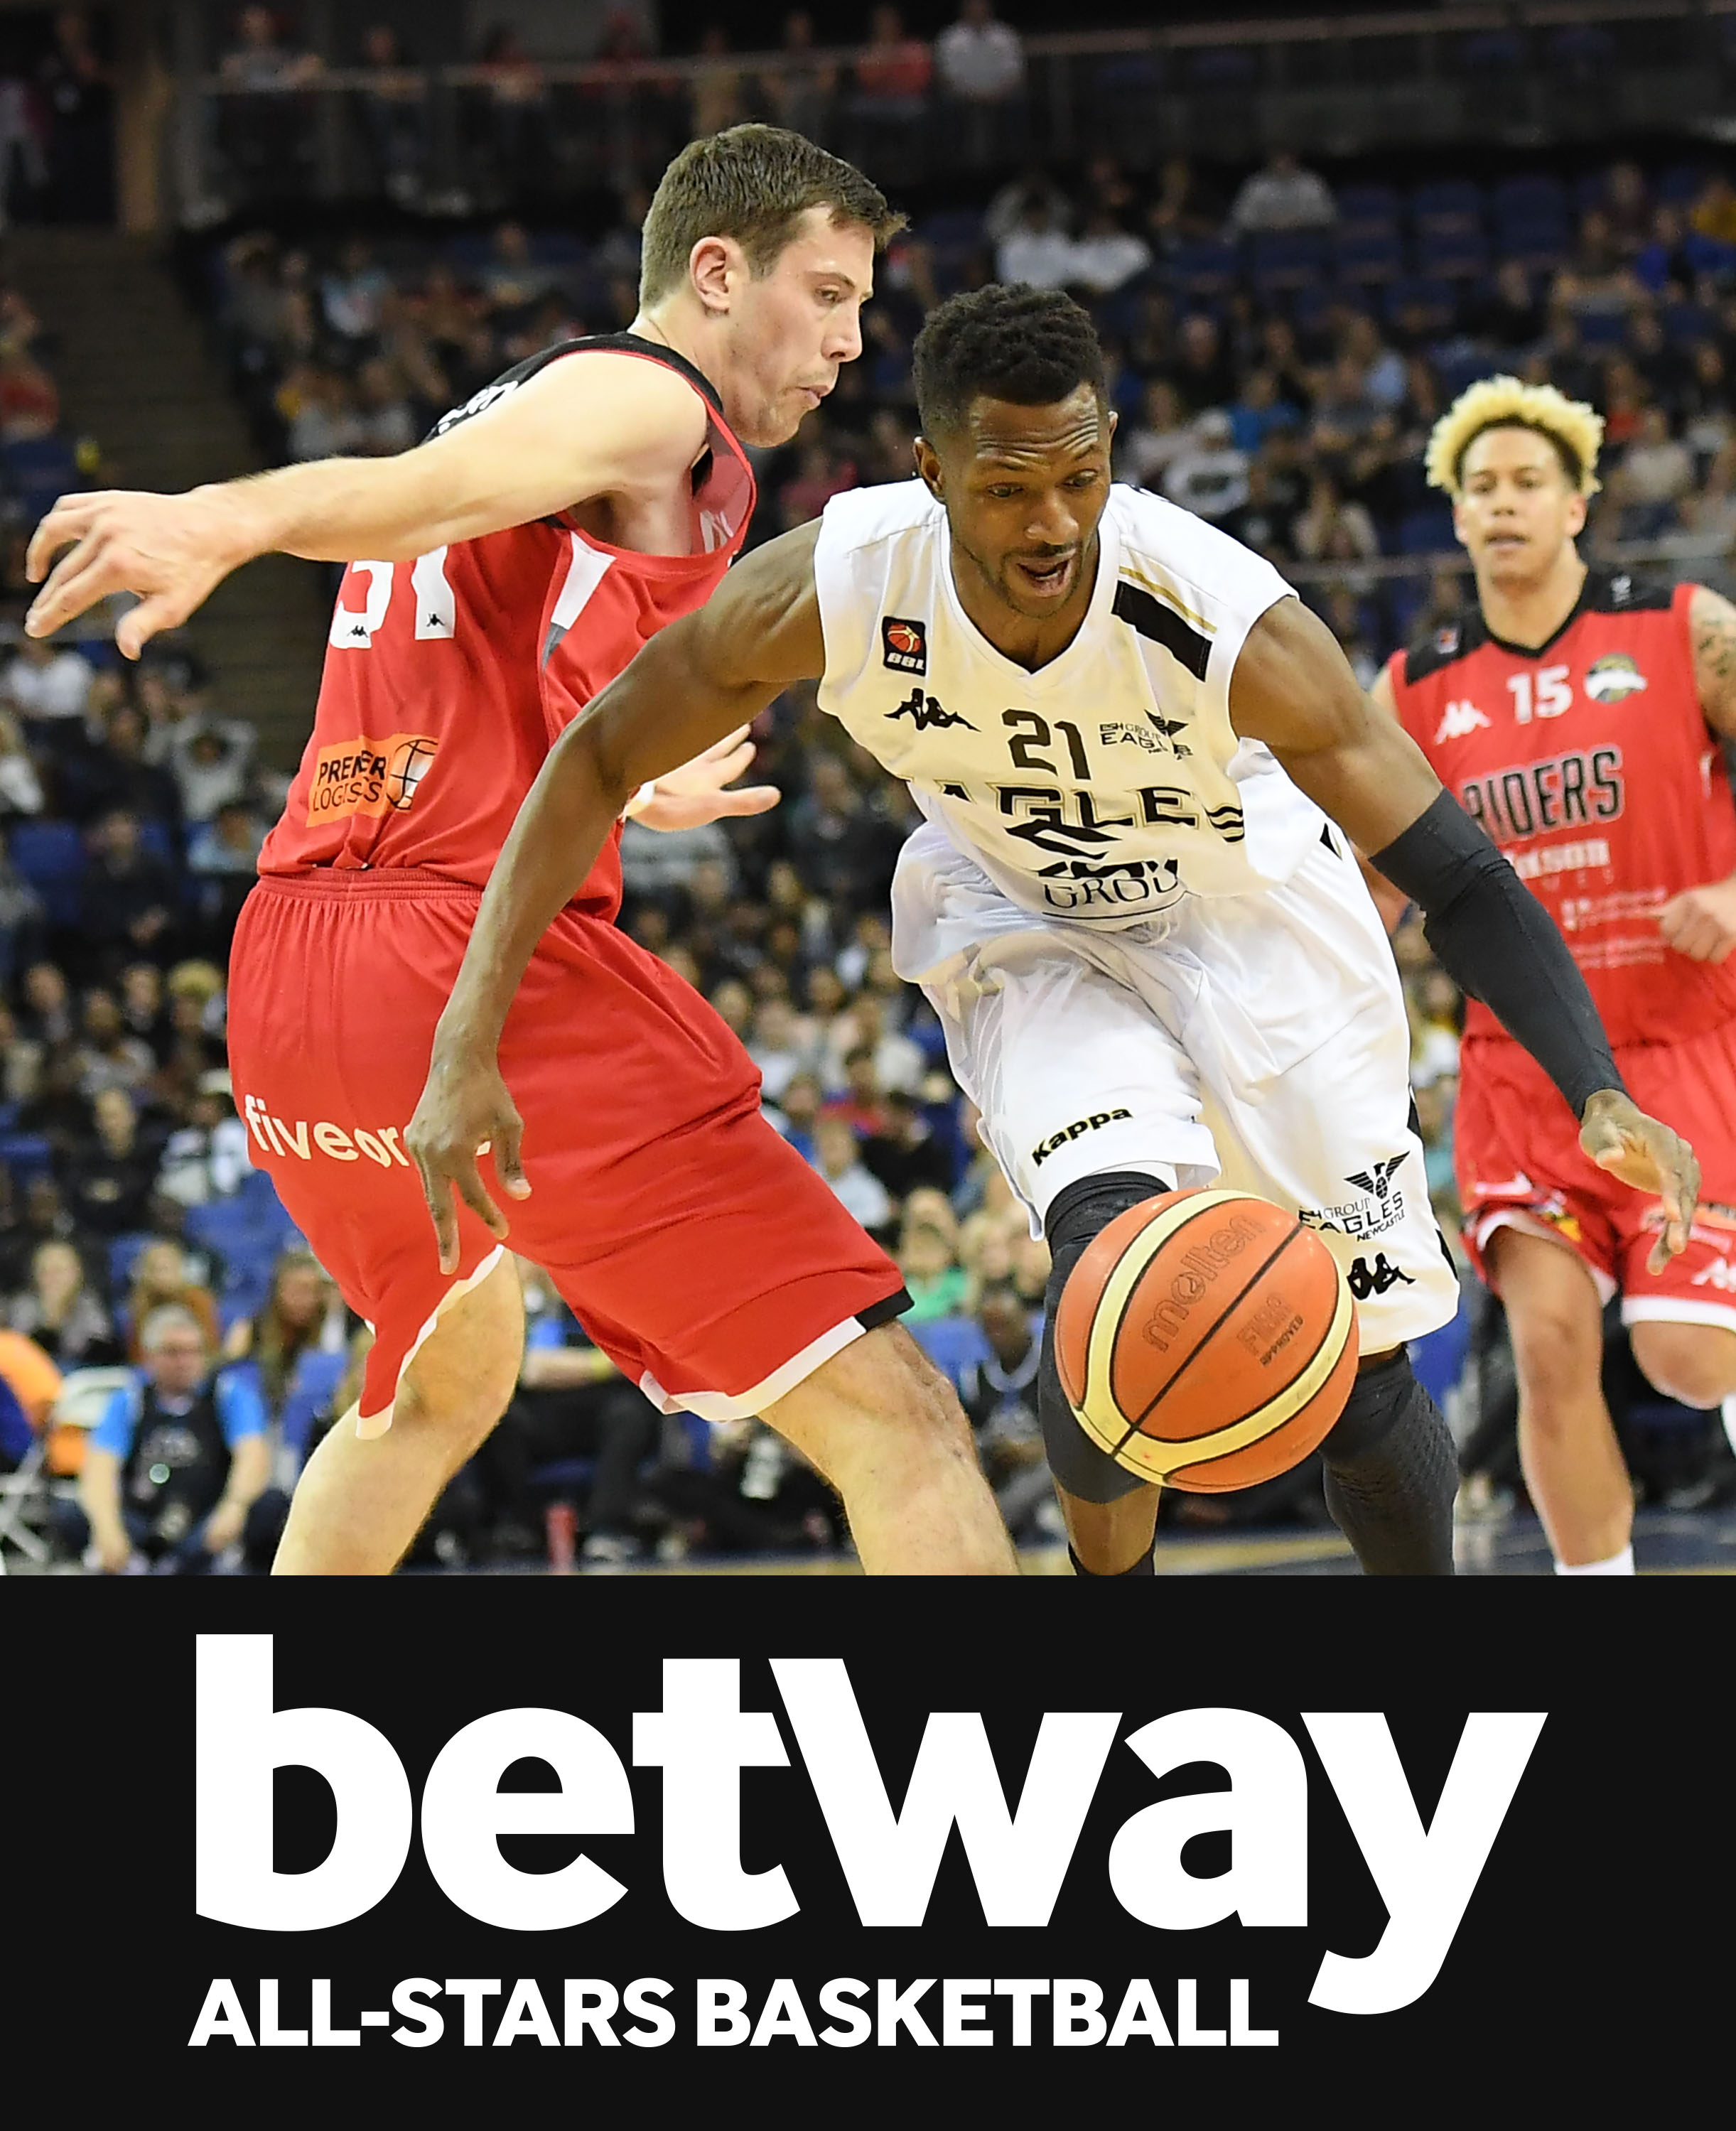 BETWAY Announced as Basketball All-Stars Title Sponsor